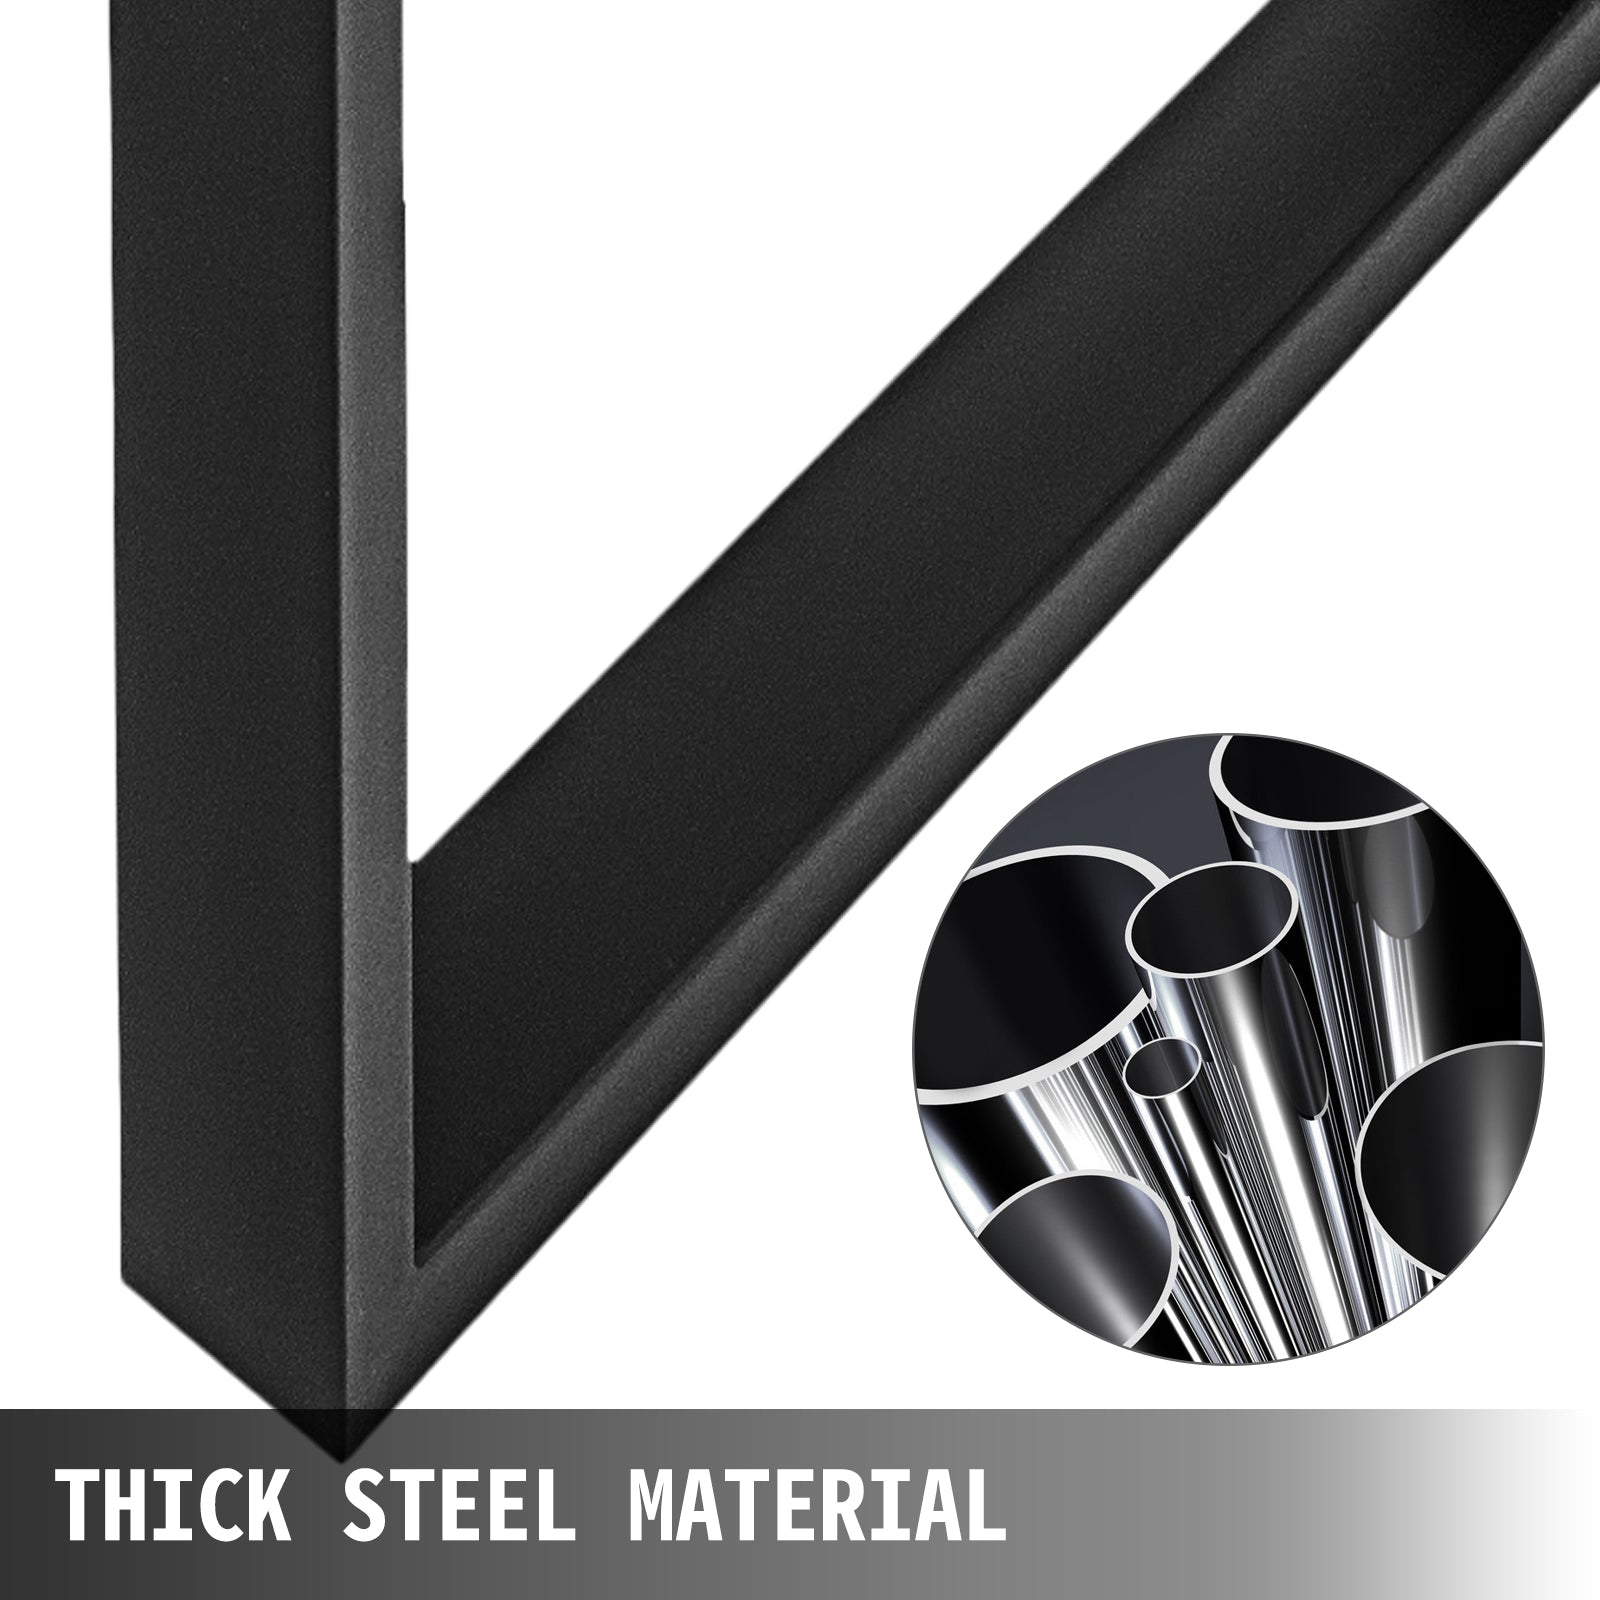 25.1''l Black U Metal Steel Legs For Coffee Table Desk Sofa Cabinet 2pc Heavy